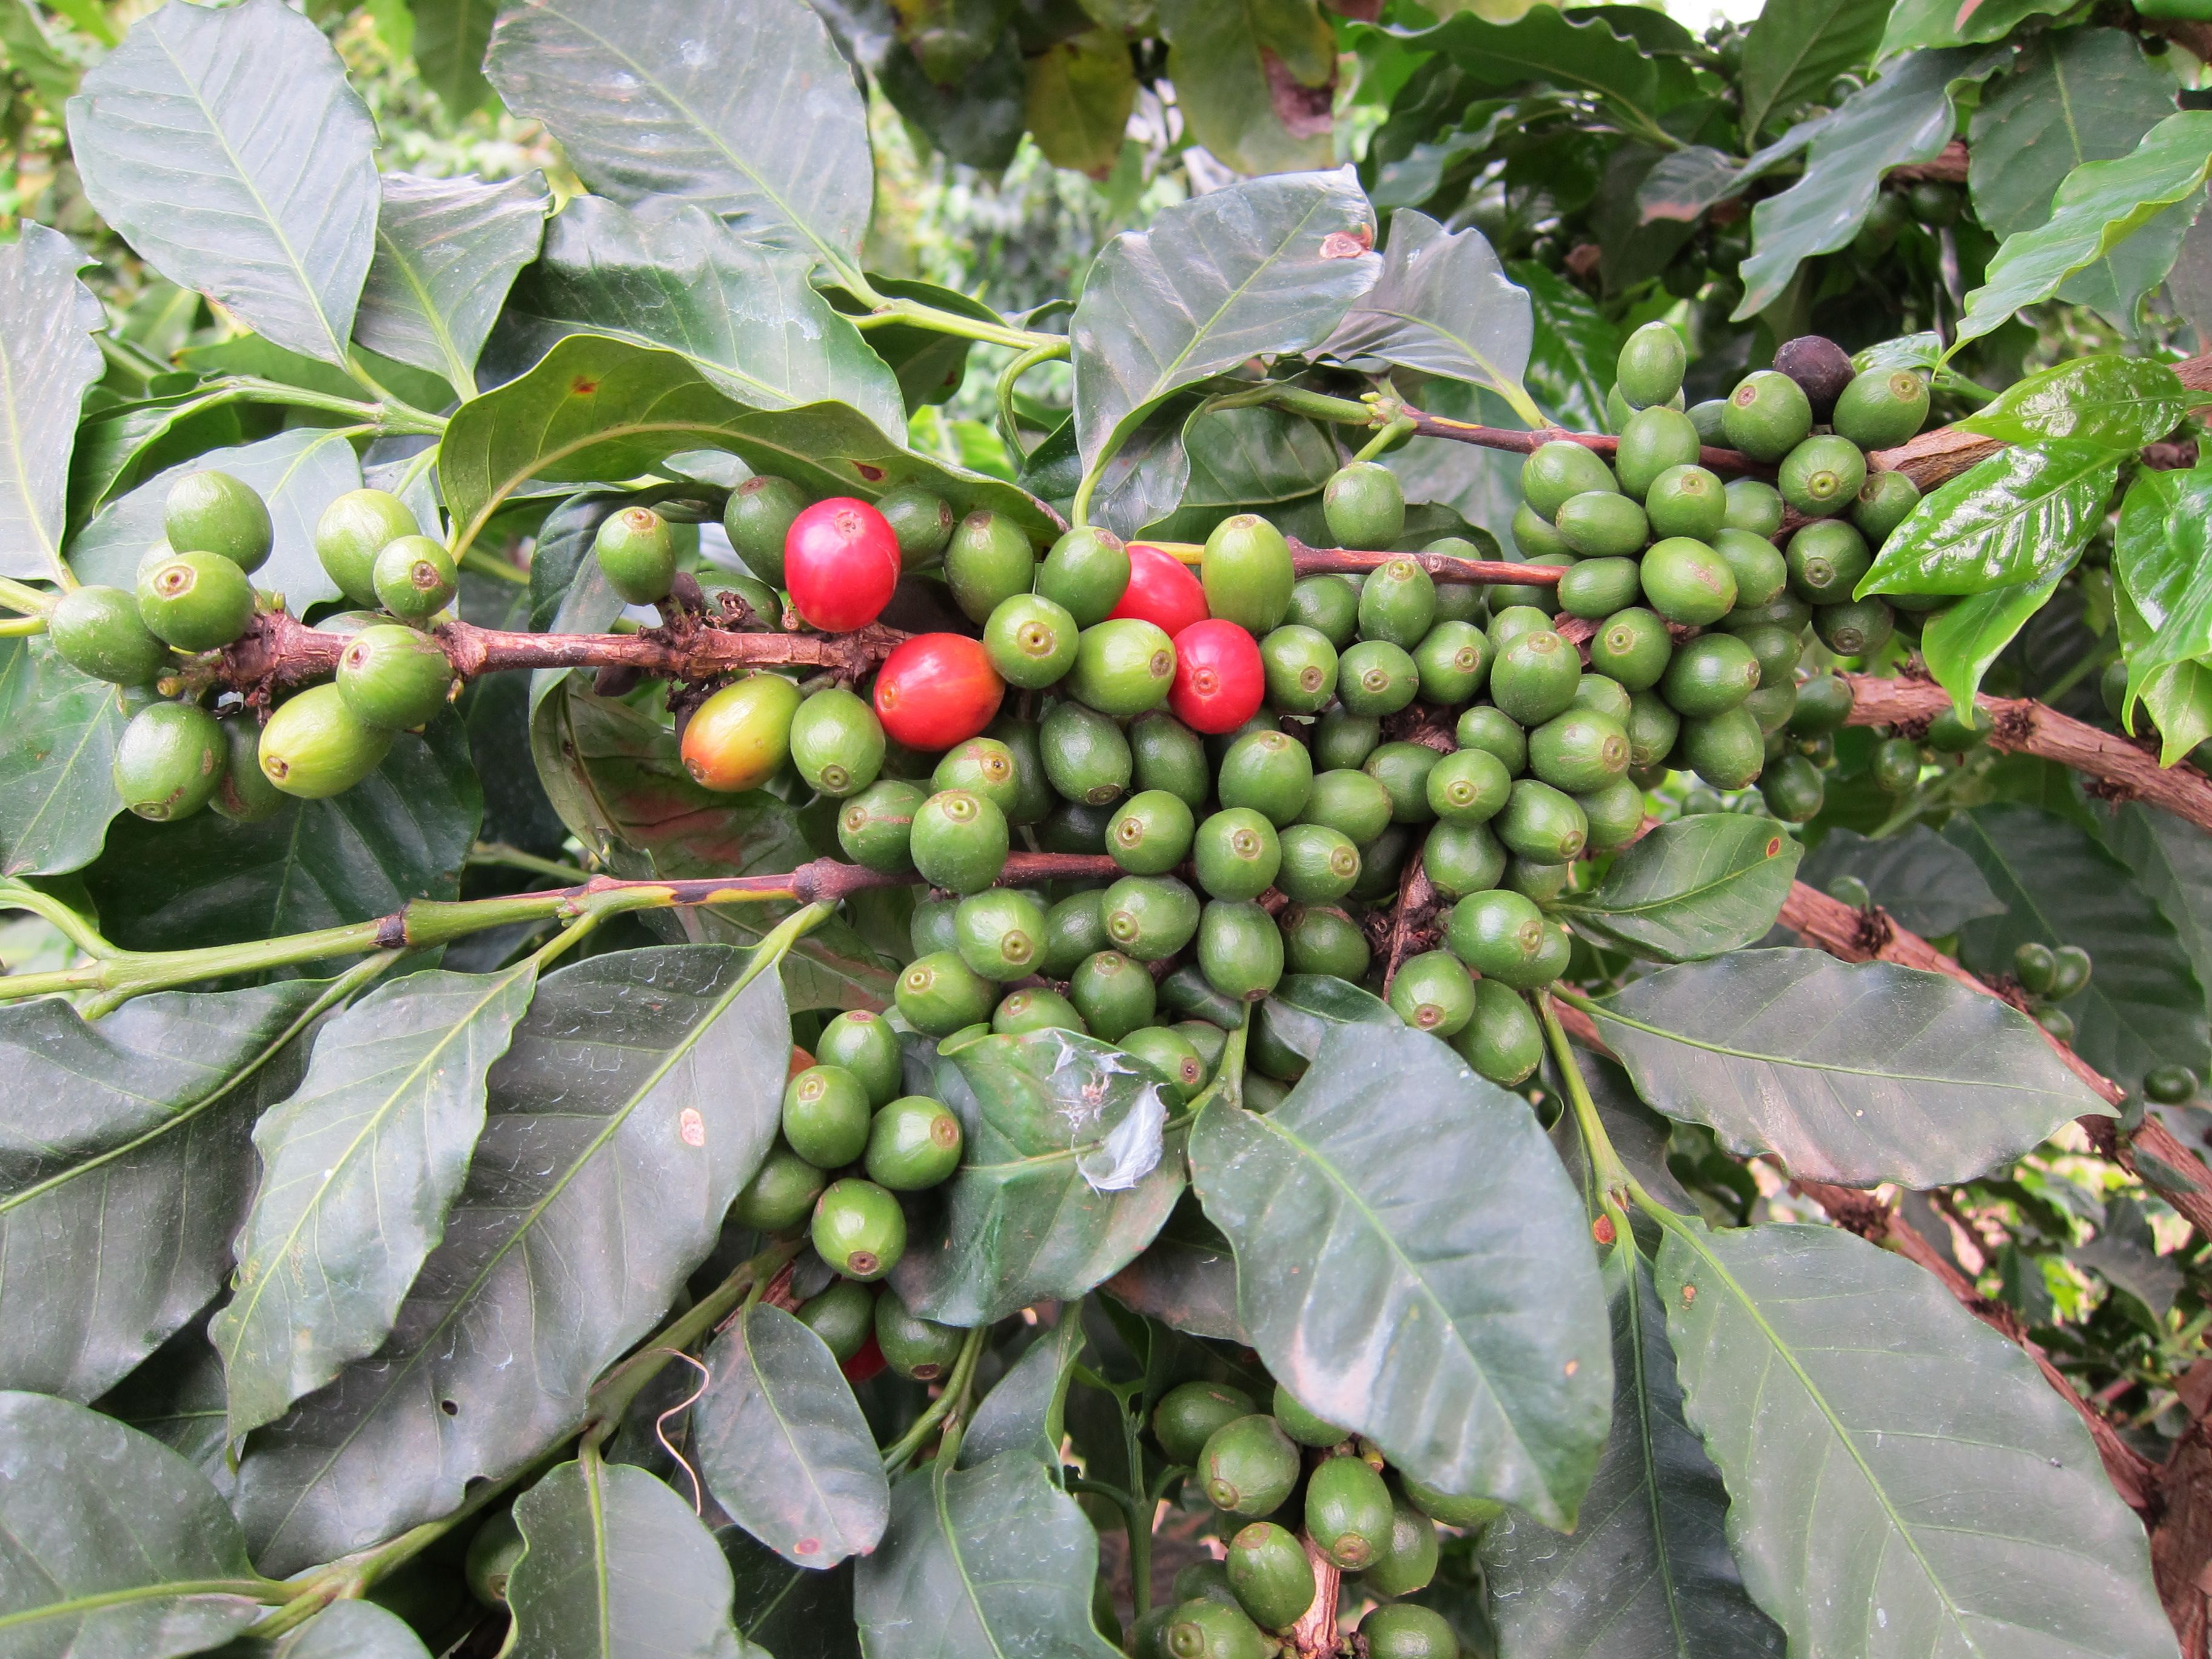 Only The Ripe Coffee Cherries Are Picked That S The Red Ones These Will Have The Right Amount Of Nutrients To Deliver A Smooth Ba Coffee Planet Fruit Coffee